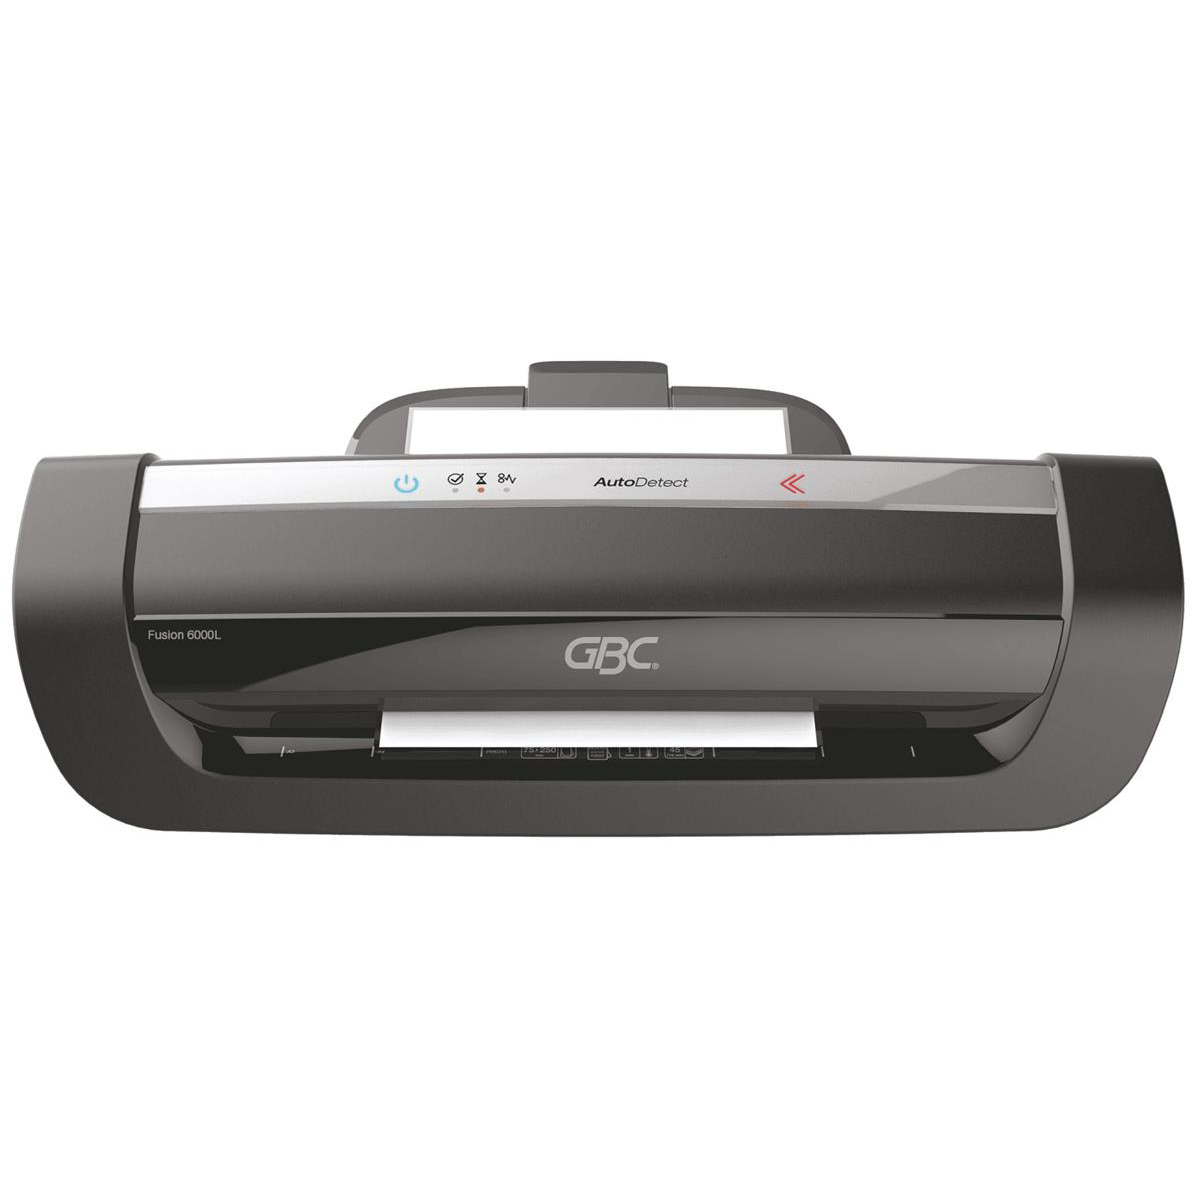 GBC Fusion 5000L A3 Laminator High Speed Up to 500 Micron Ref 4400751